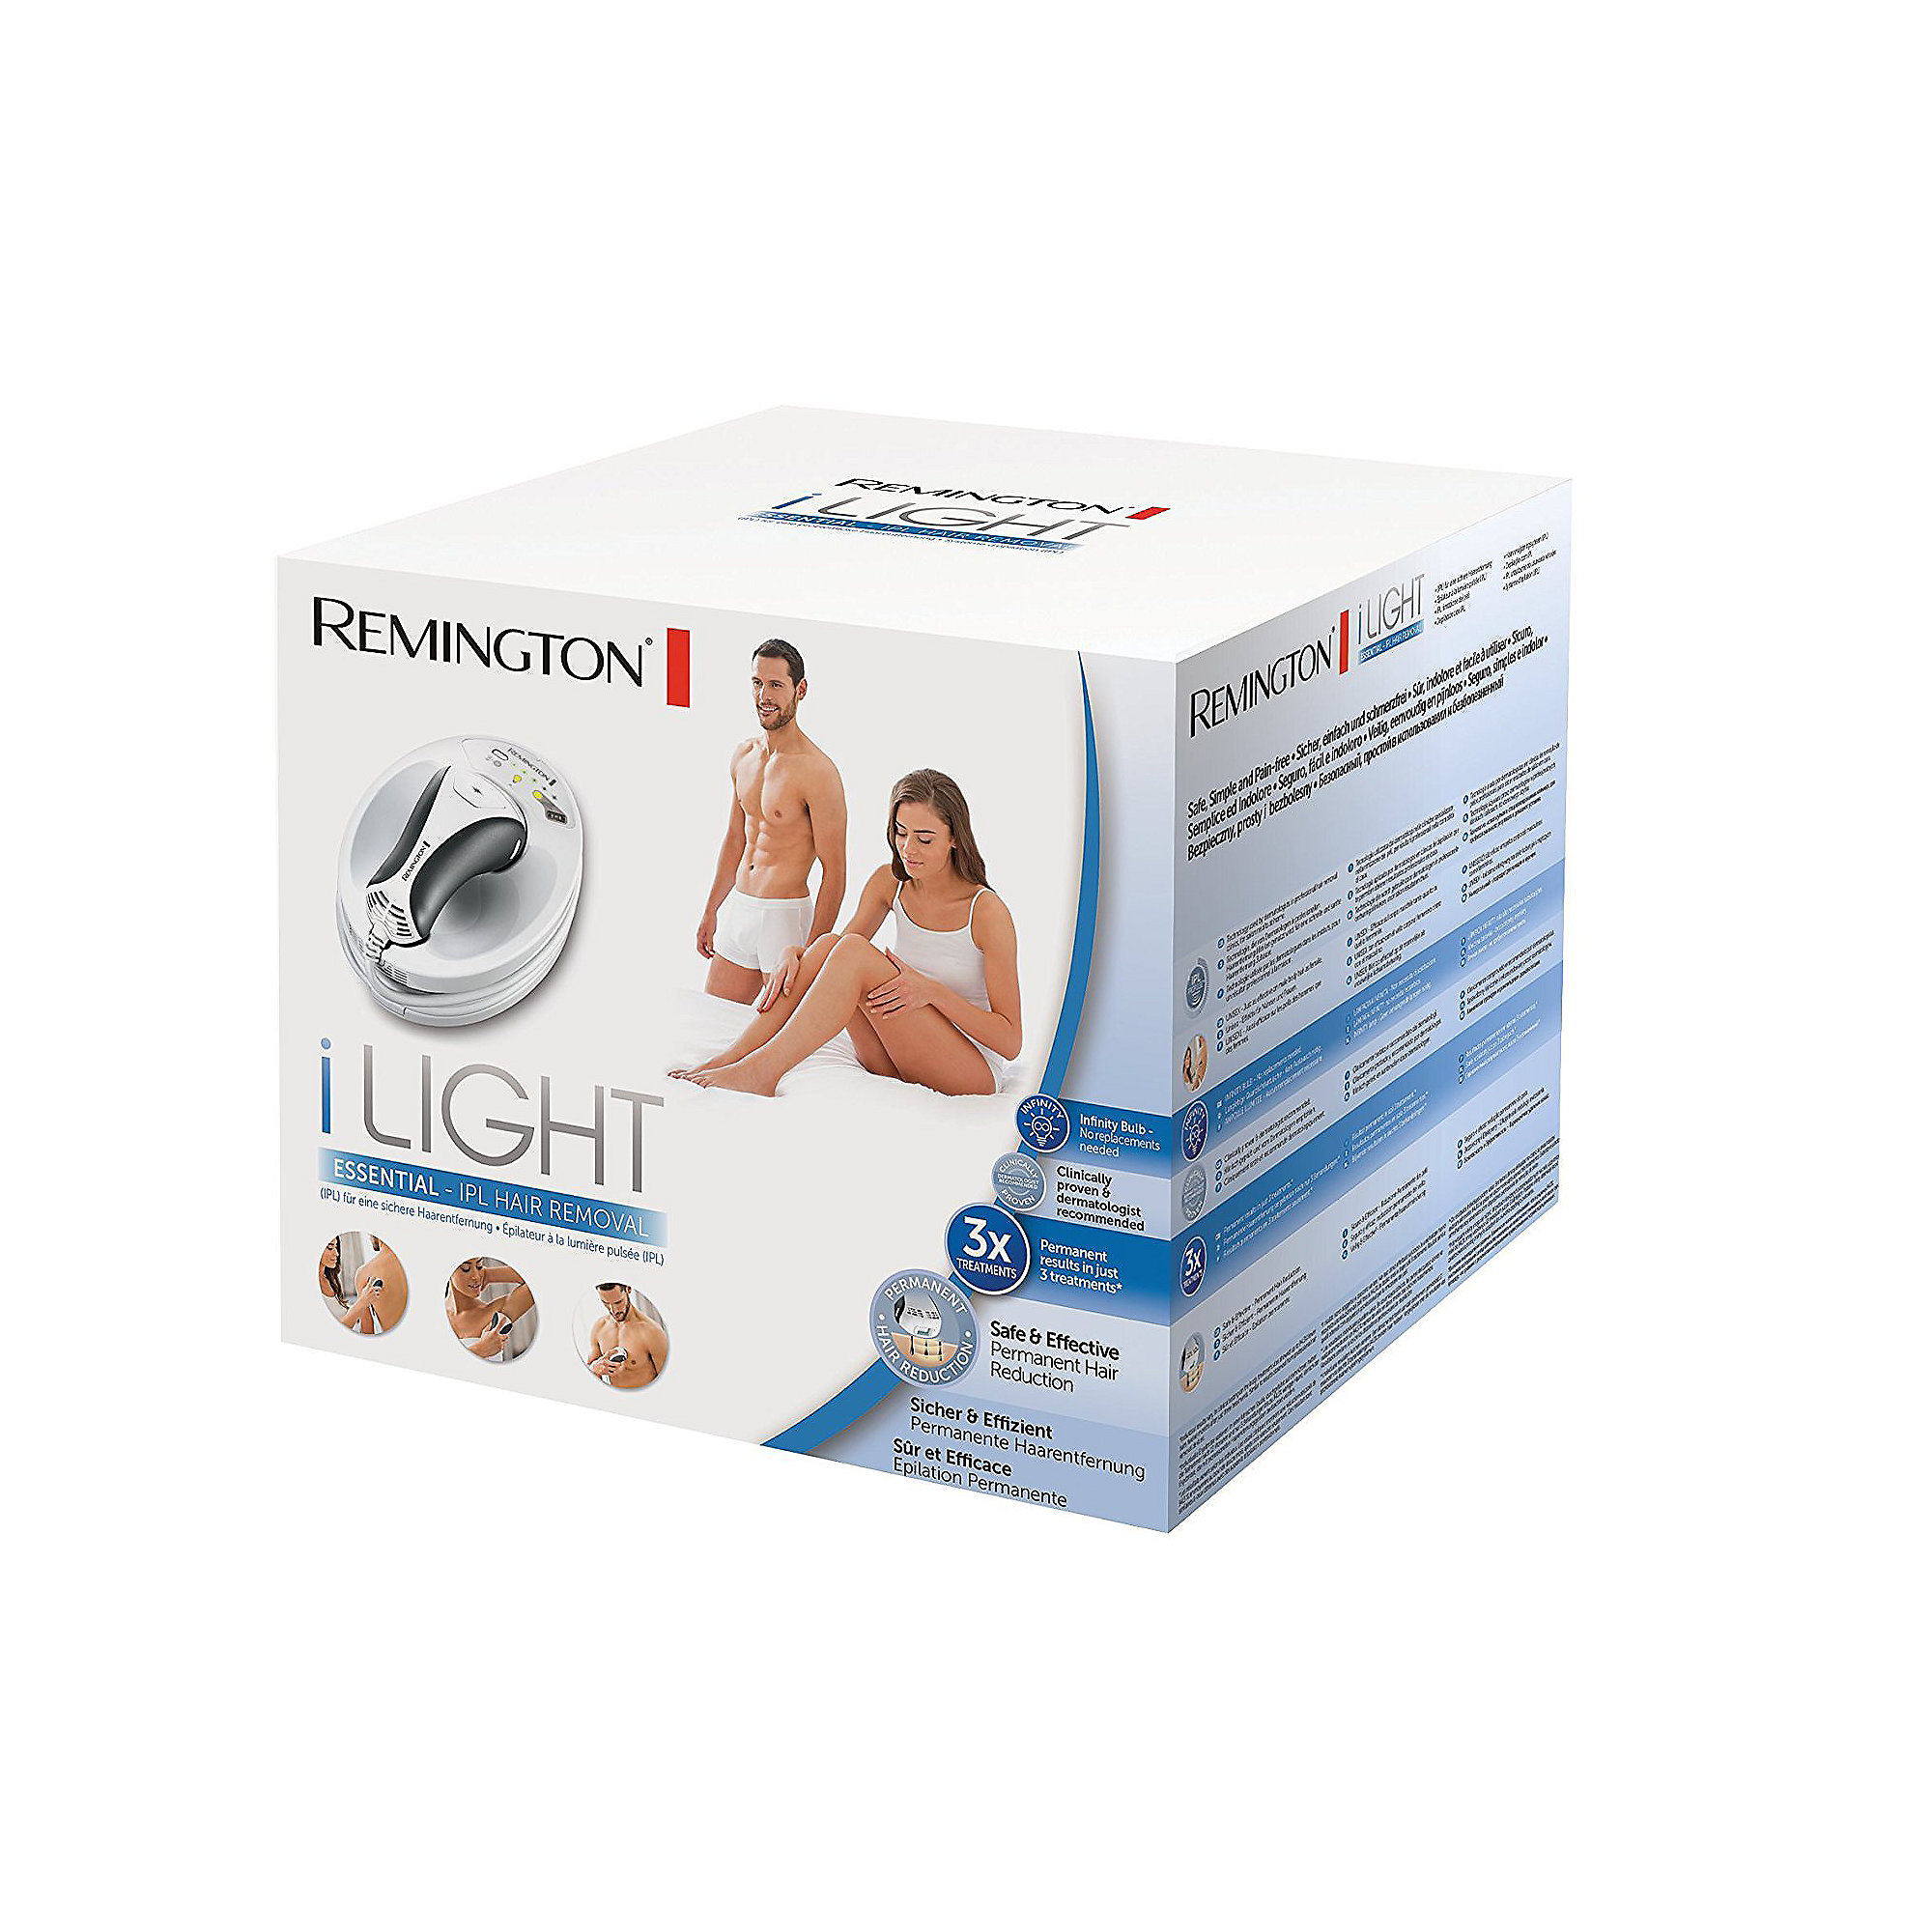 Remington IPL6250 i-Light Essential IPL Haarentfernungssystem